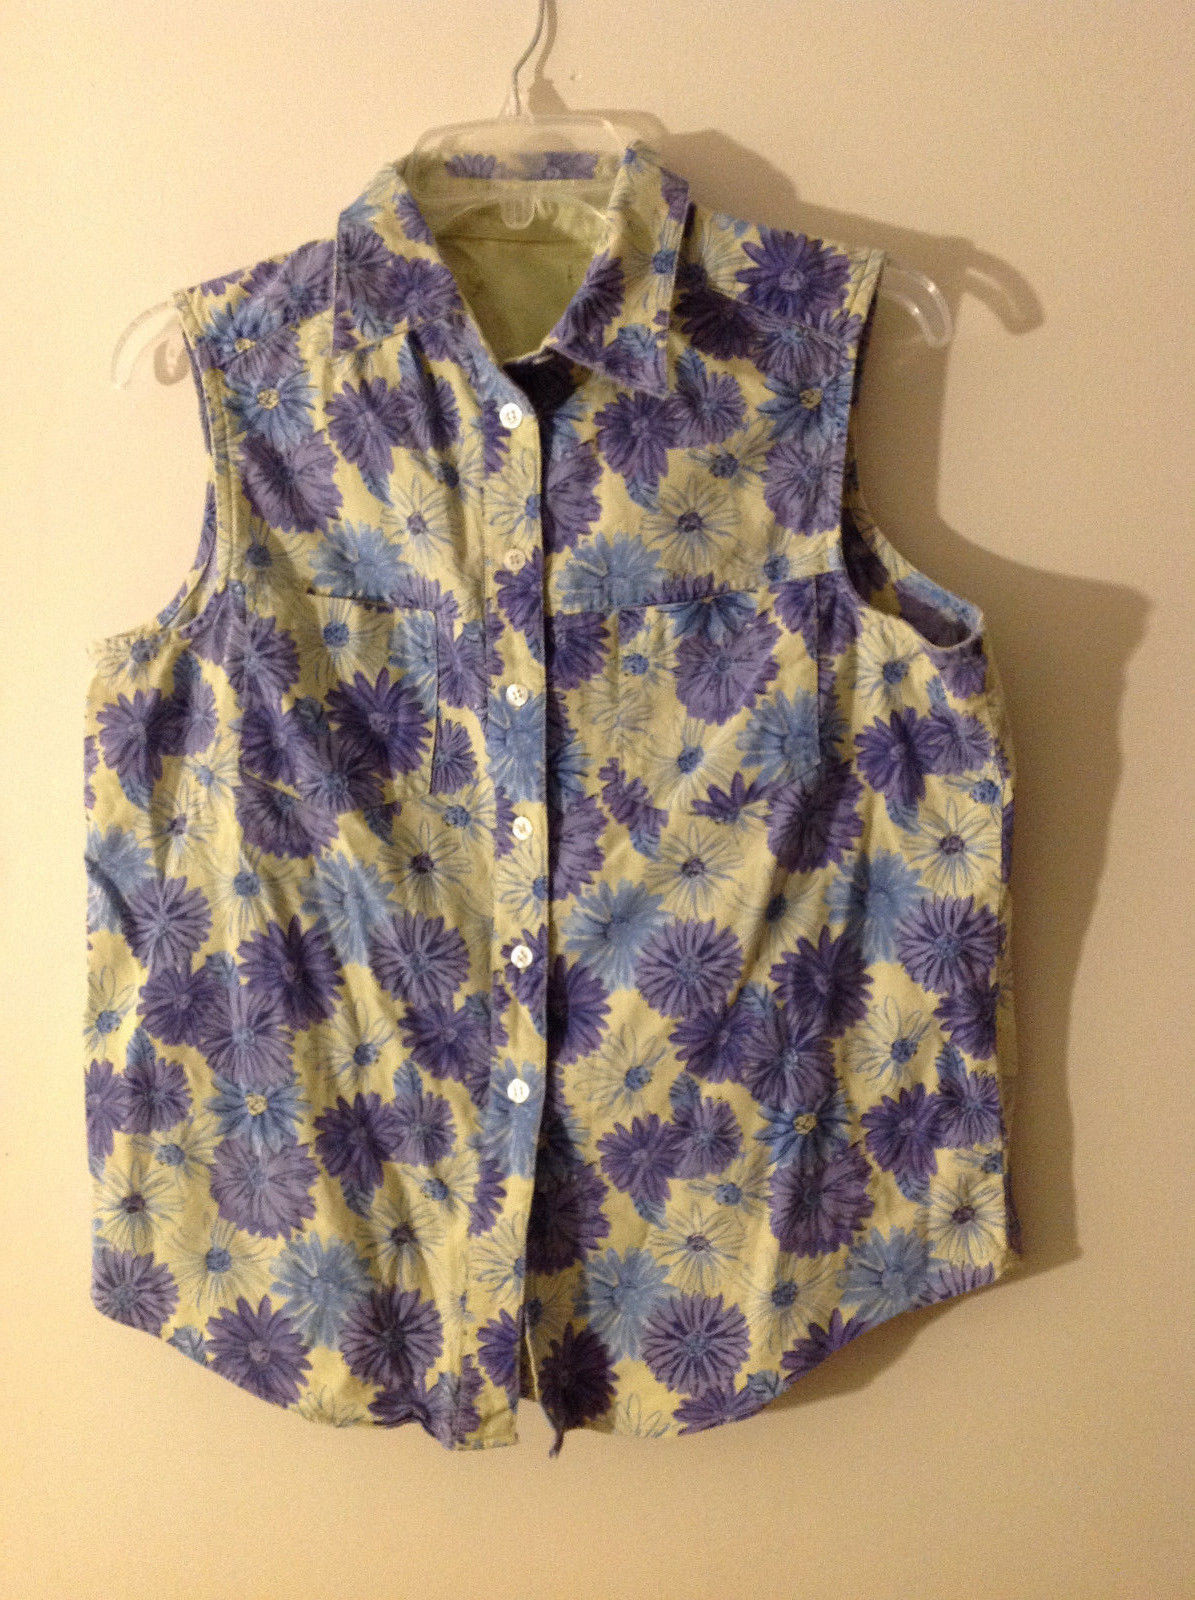 No Tags Women's Size L Vest Light Pistachio Green w/ Blue & Purple Floral Print